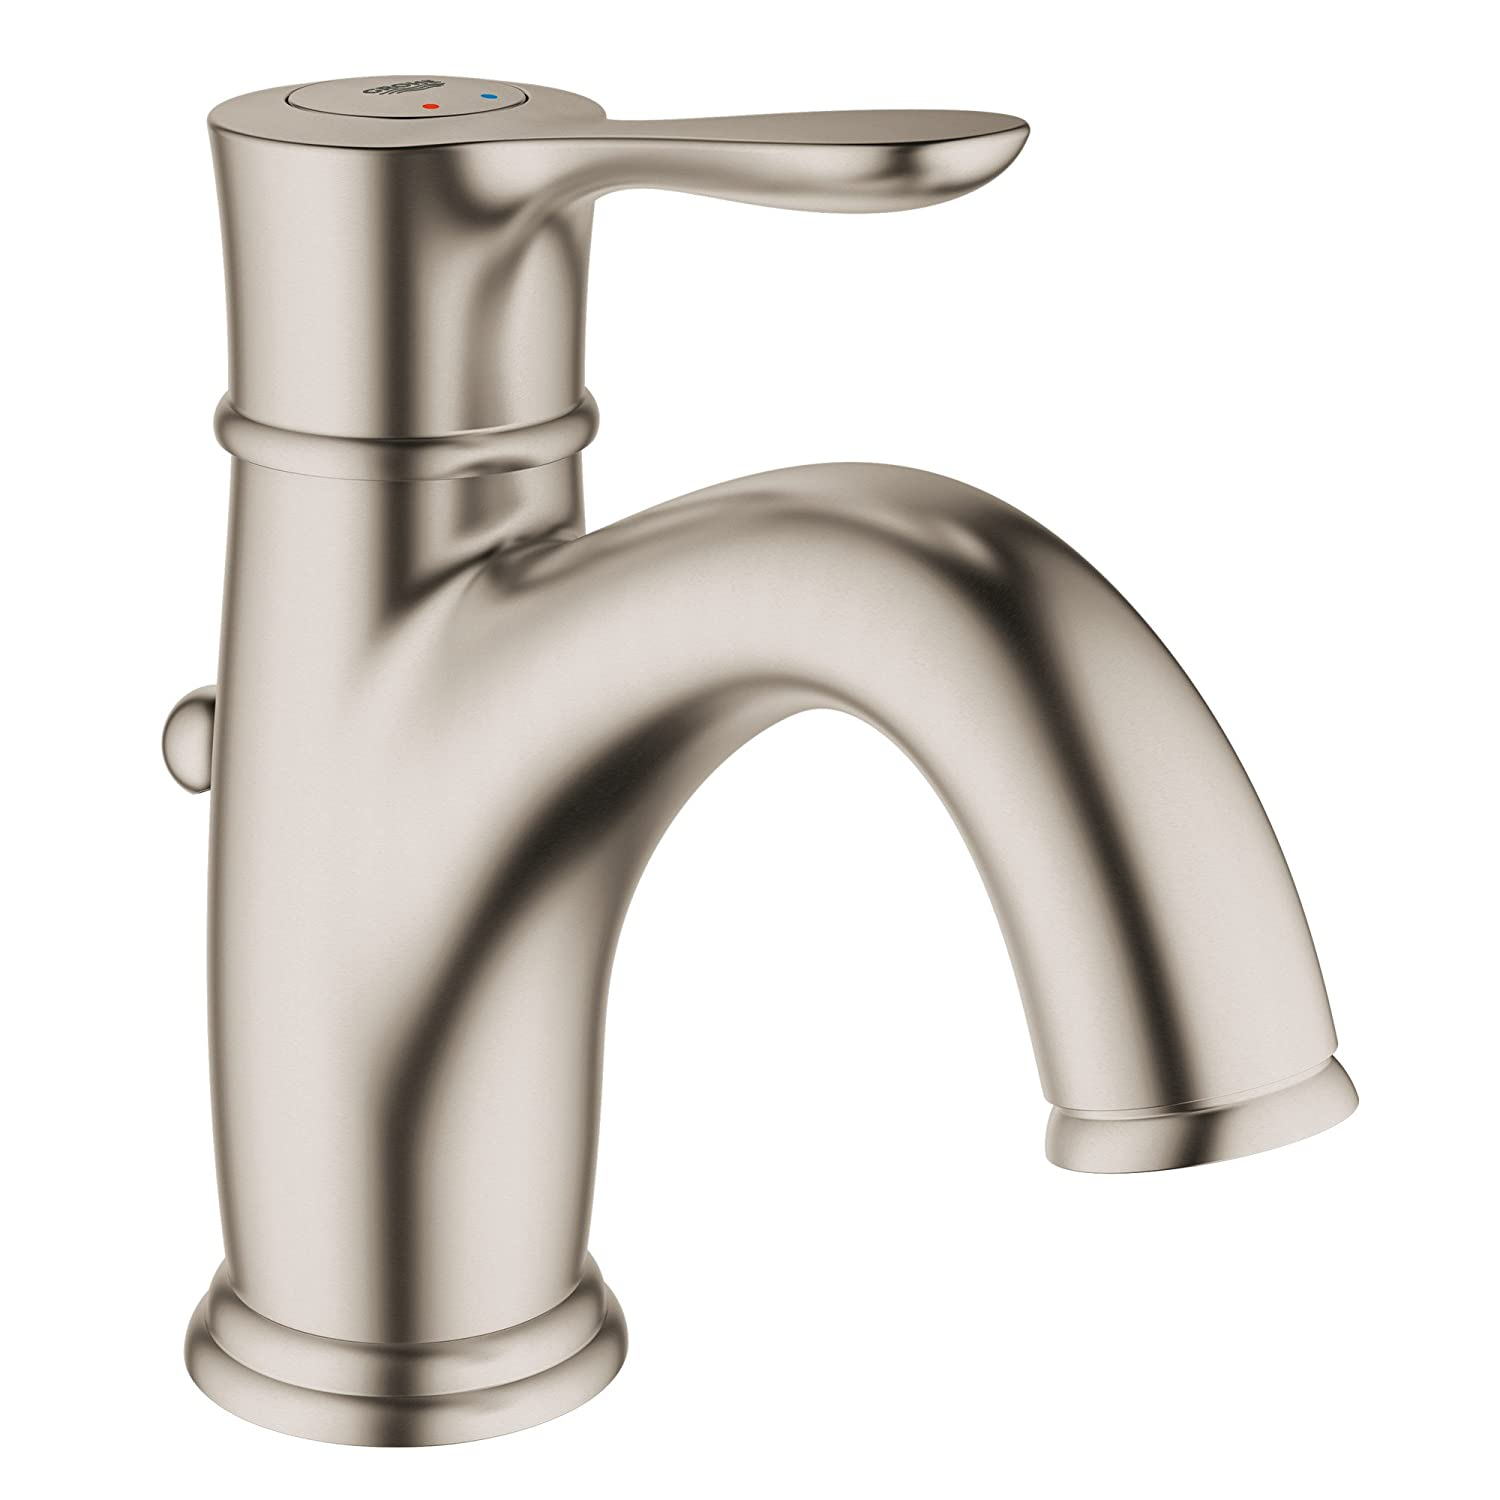 Amazon.com: Parkfield Centerset Single Handle Single Hole Bathroom Faucet    1.5 GPM: Home Improvement